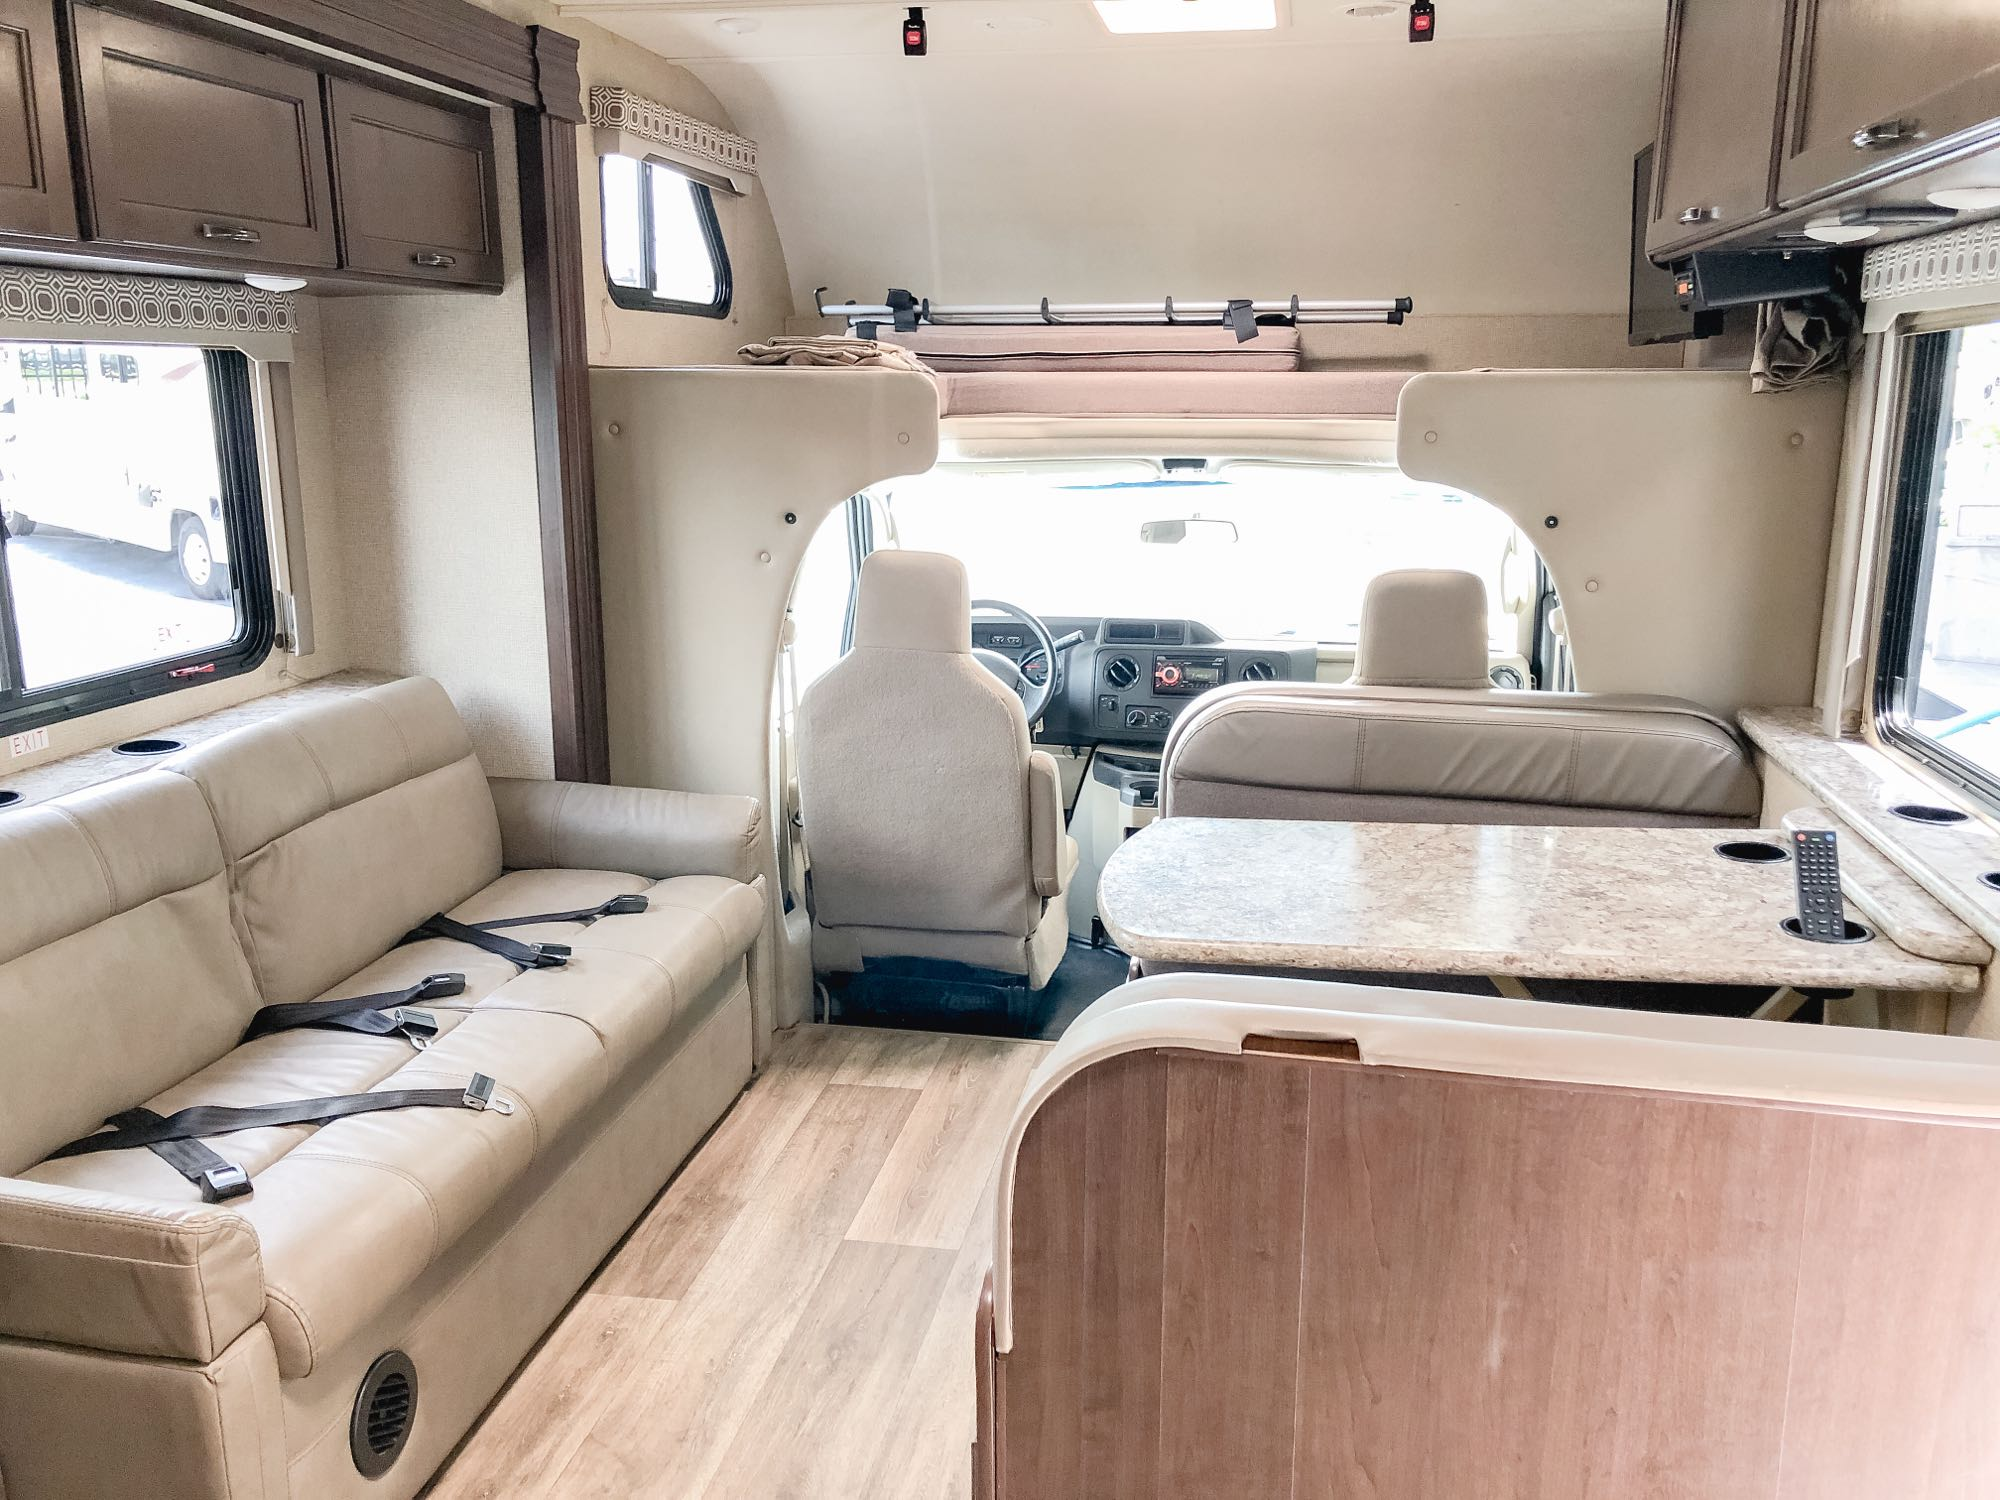 Above cab sleeping space - Full Size Bed. Thor Motor Coach Four Winds 2019